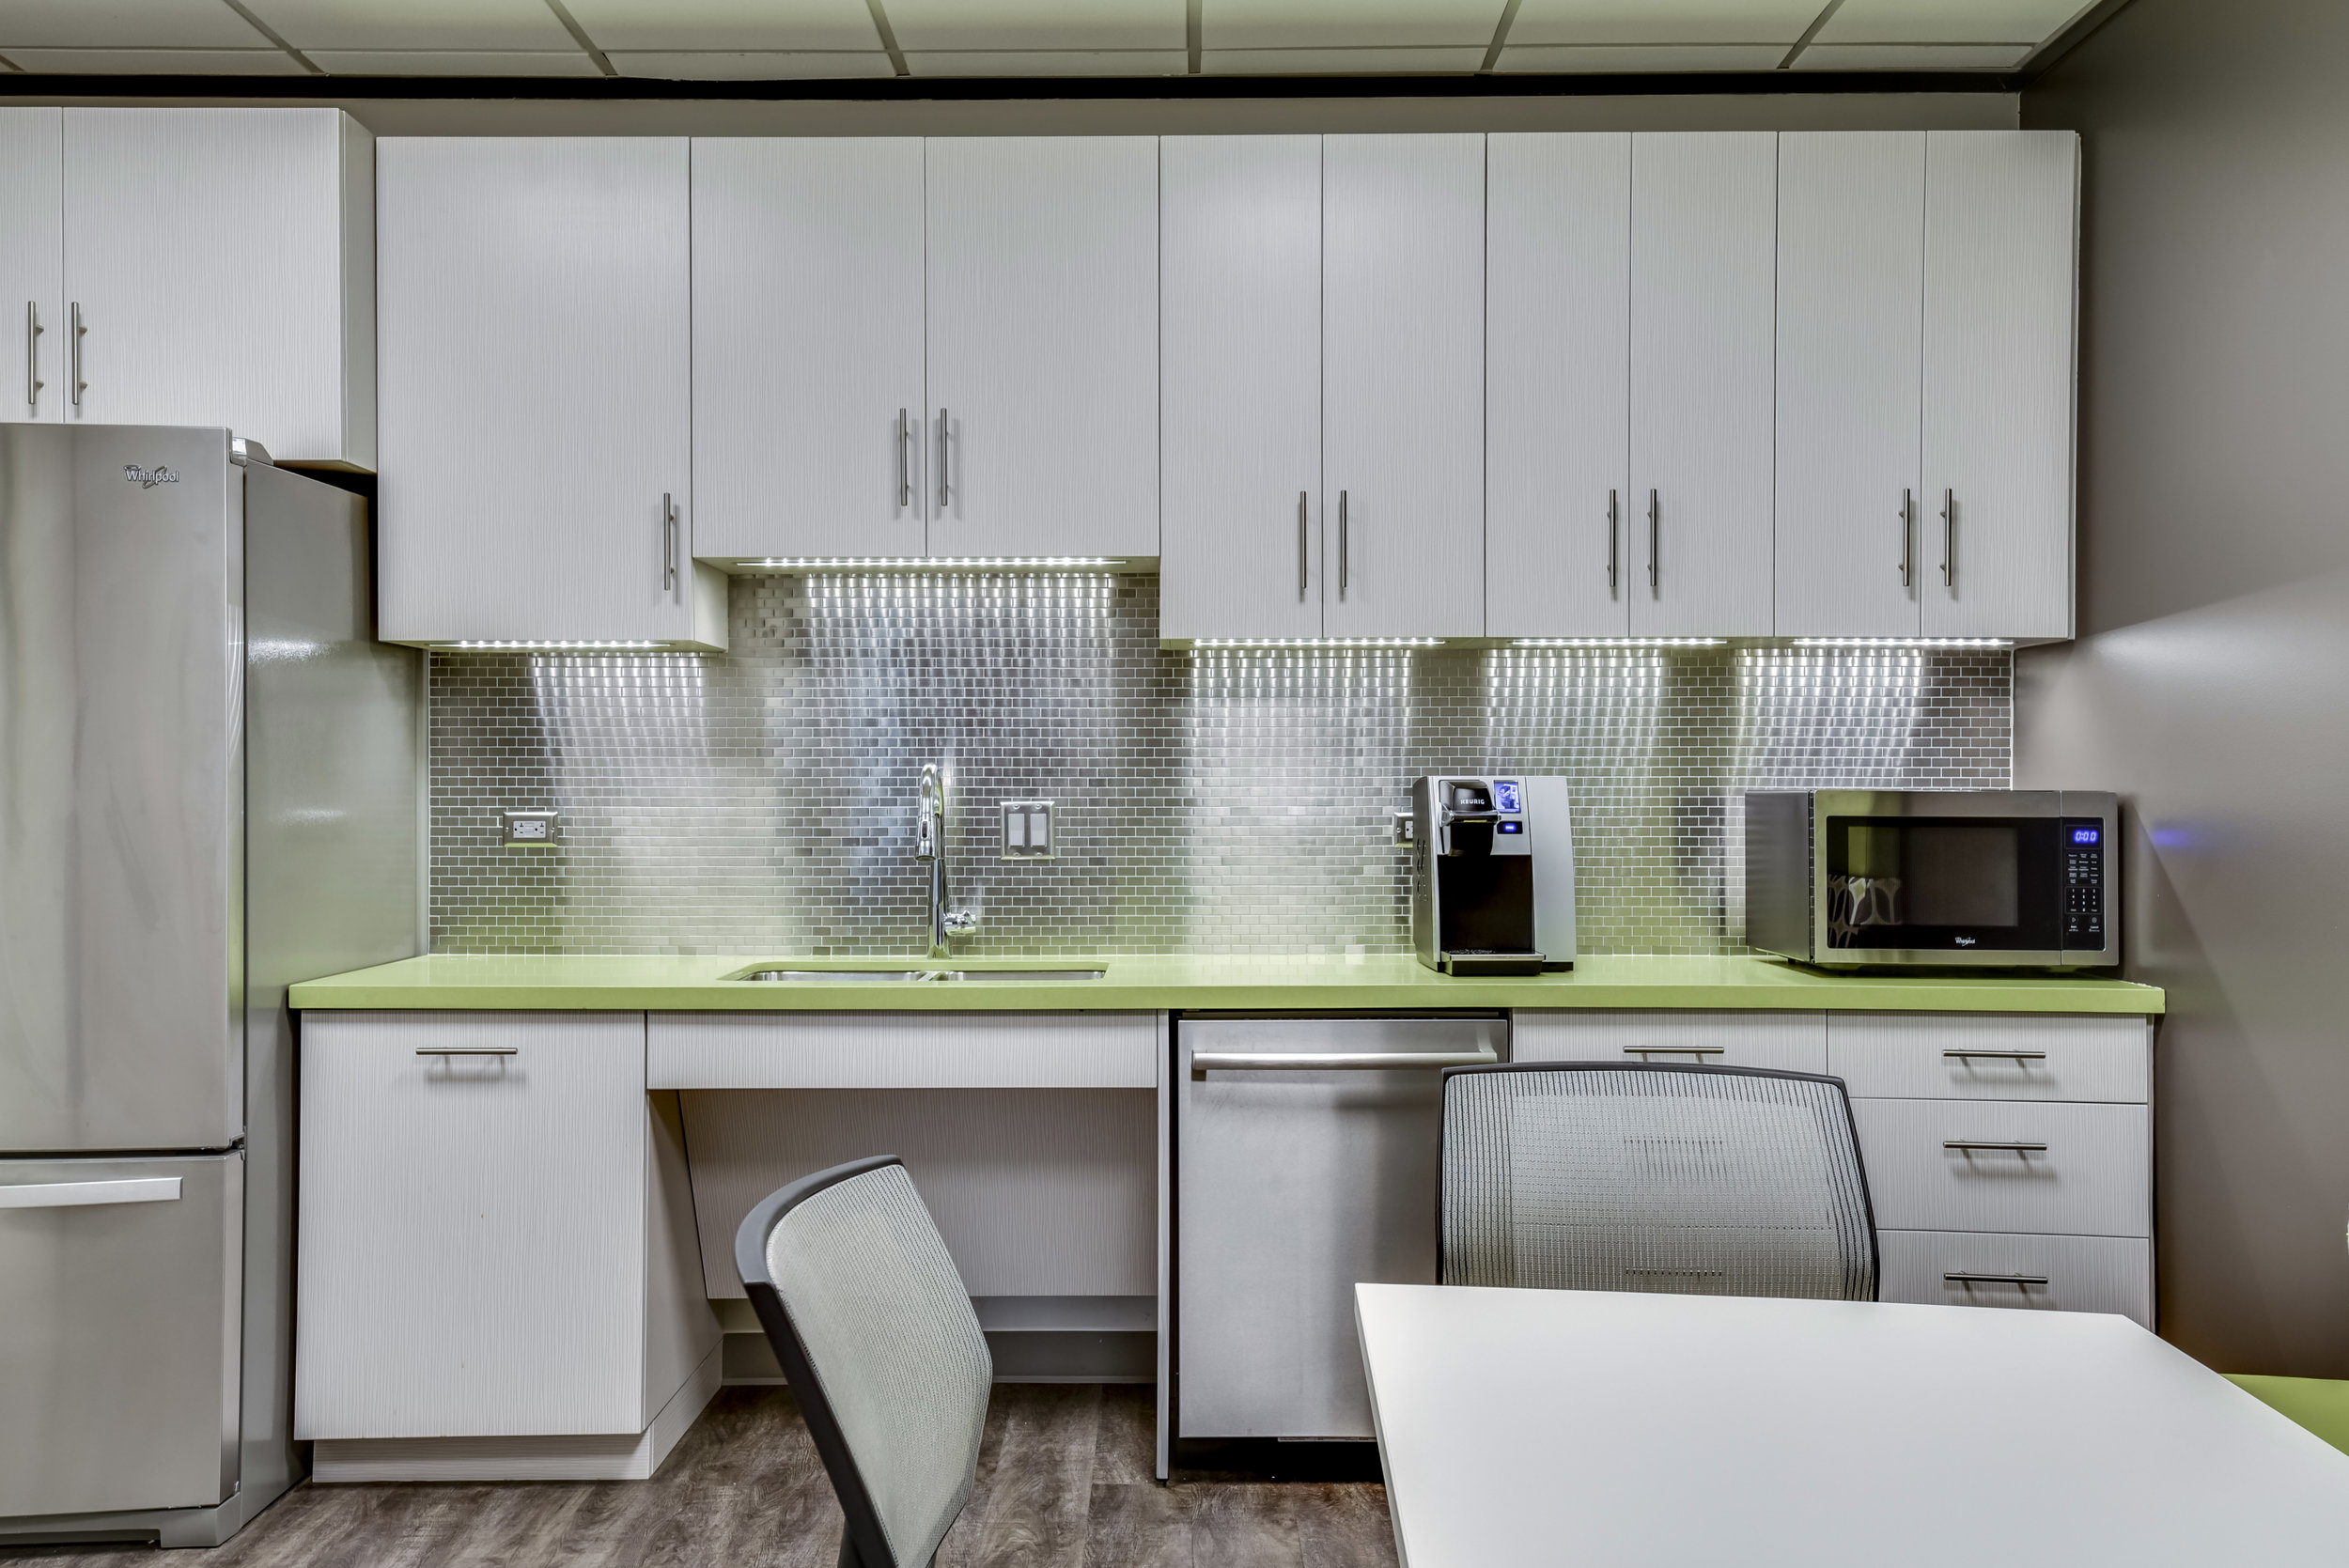 Office Kitchen Interior Design with Beautiful Kitchen Backsplash